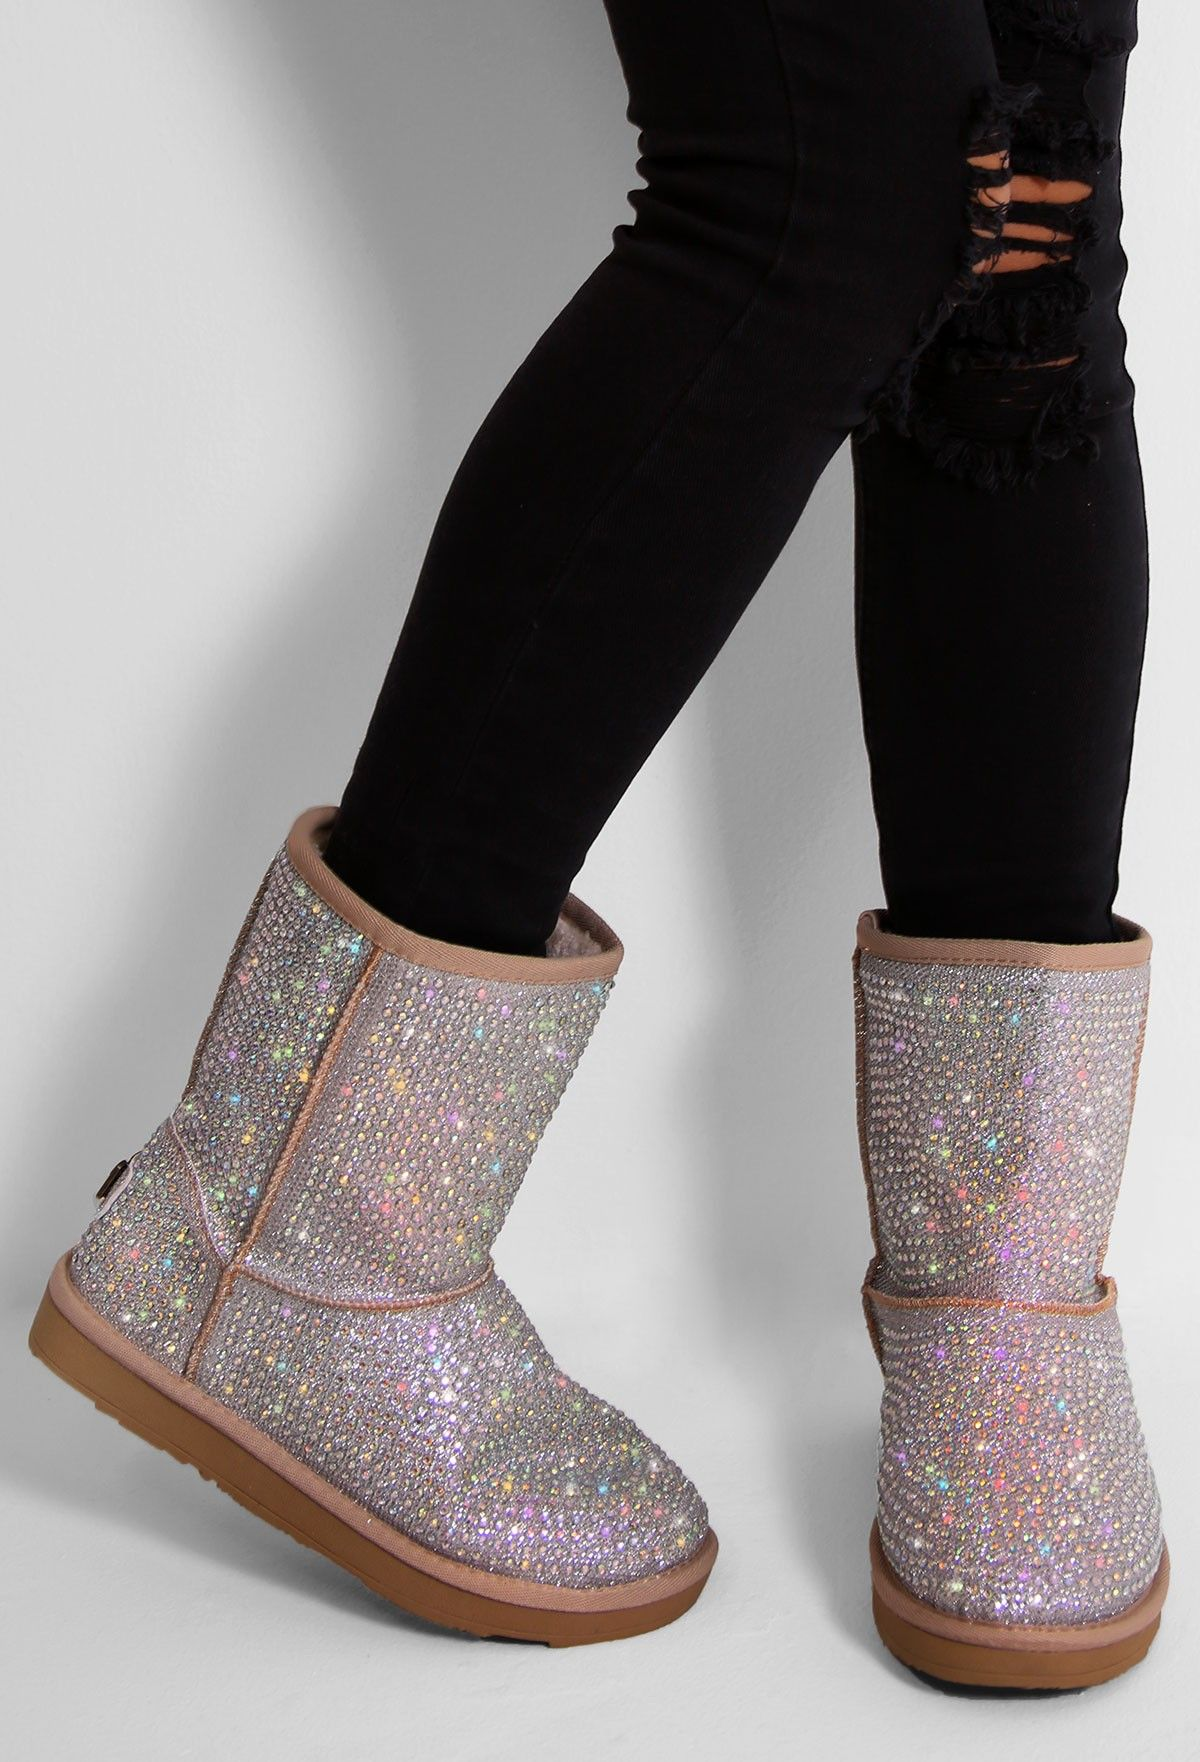 Keep your feet super toasty this winter in these gorge diamante ankle boots! These lush winter boots are lined with faux fur and feature all over crystal ...